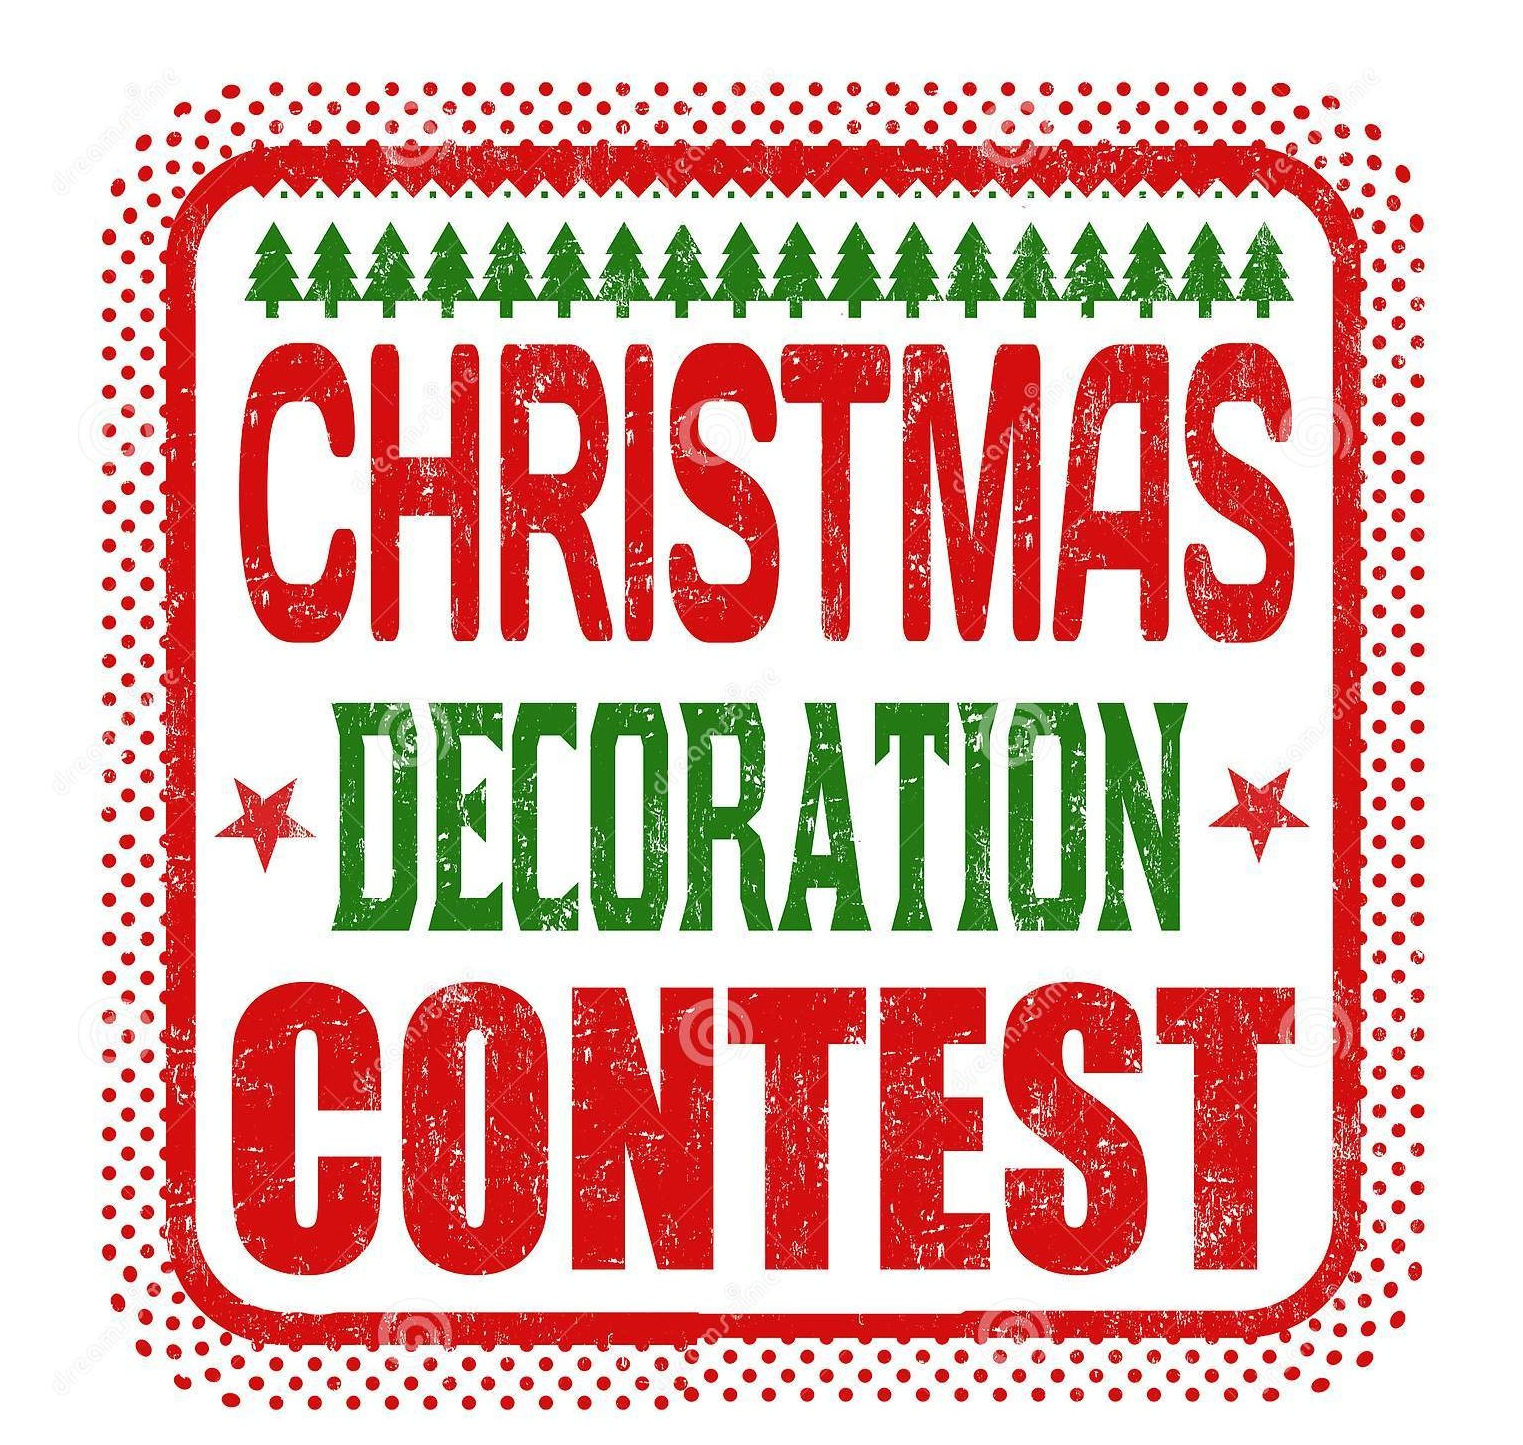 Christmas Decorating Contest Image